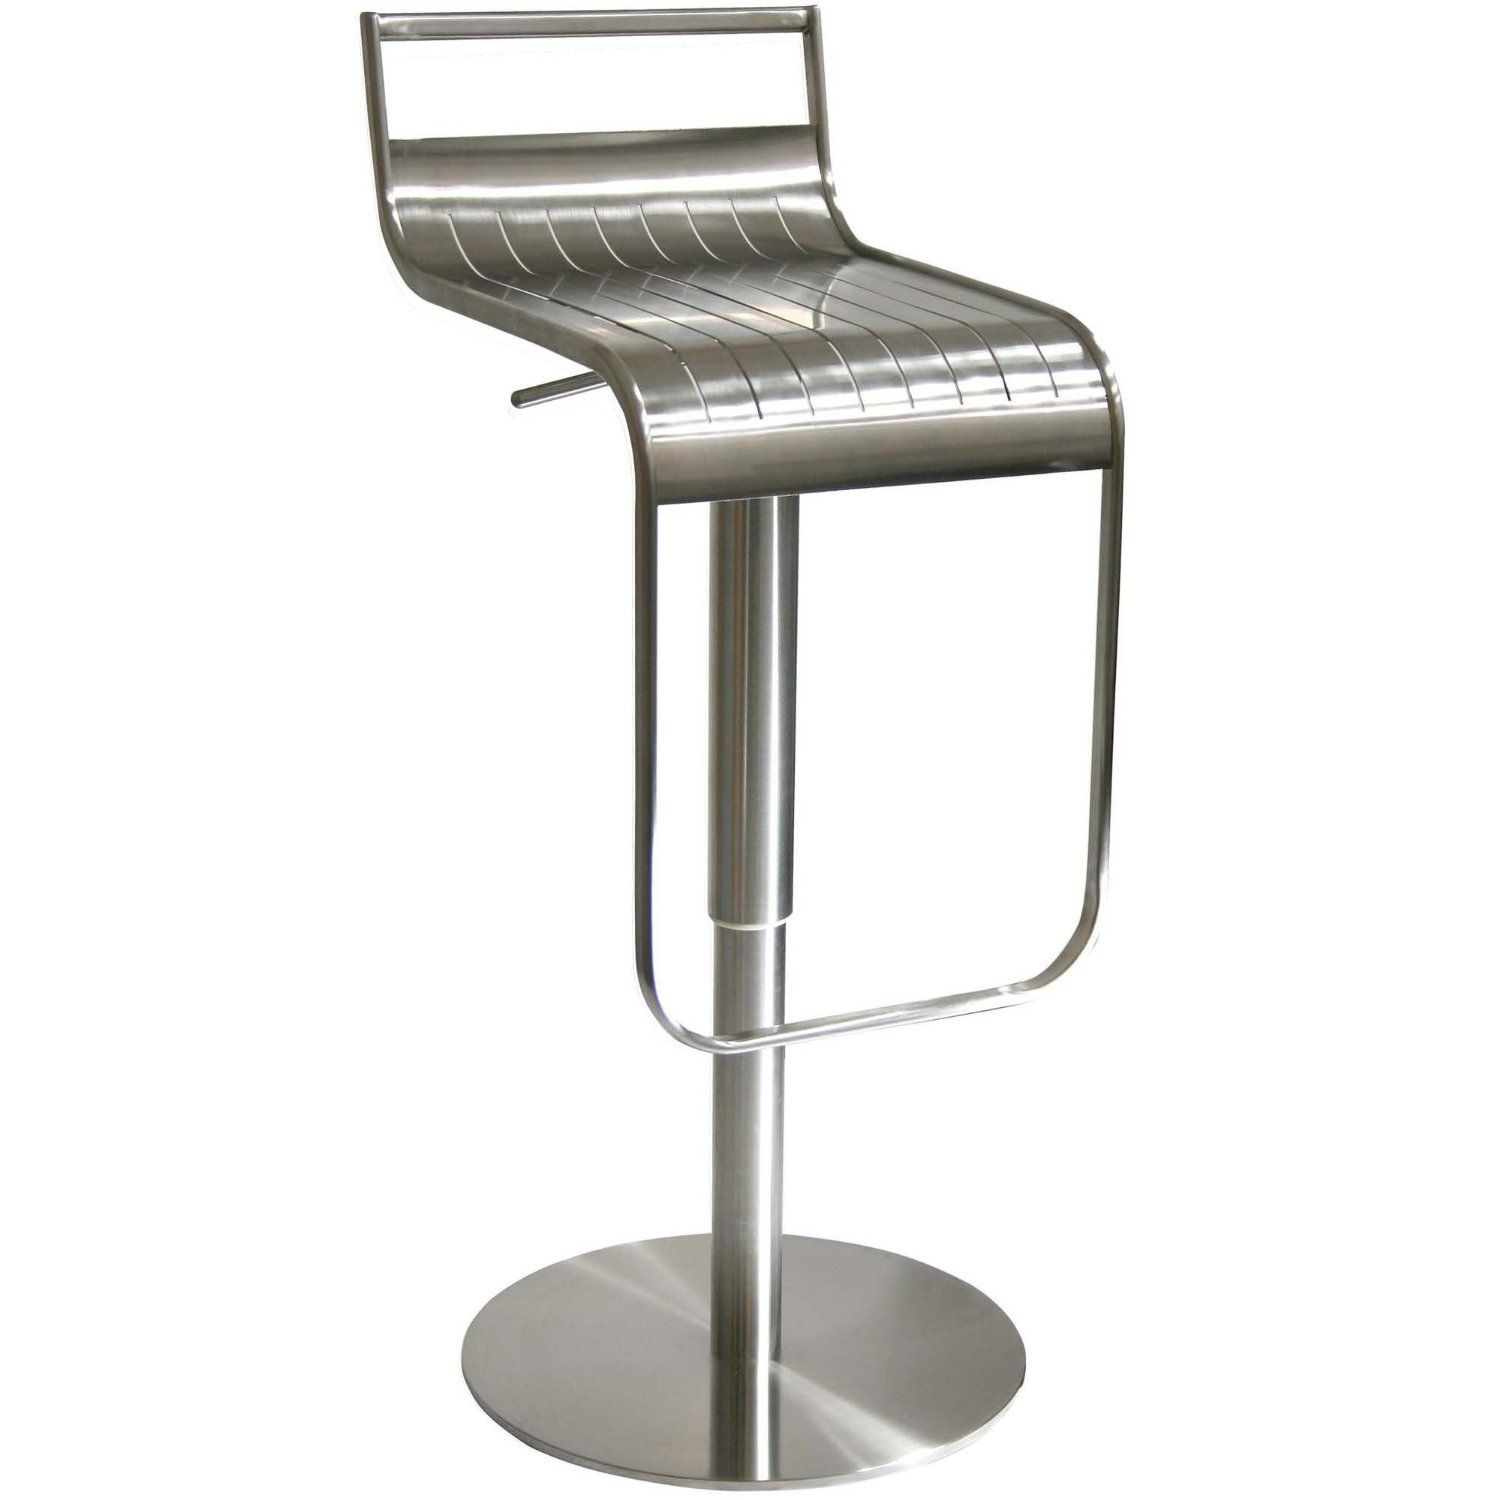 Amerihome BSSS1 Stainless Steel Bar Stool: Amazon.co.uk